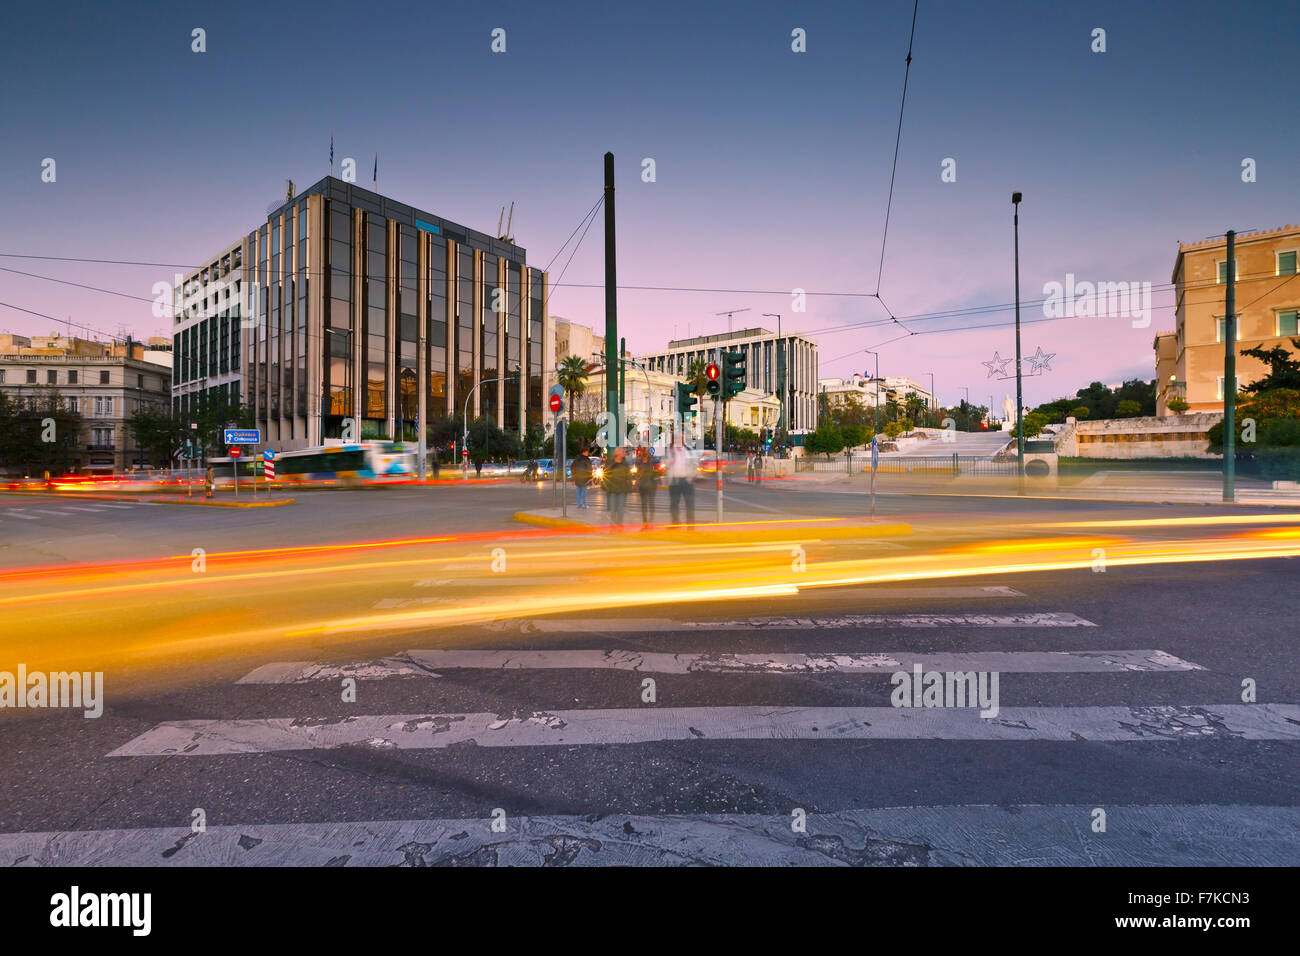 Crossroad and traffic in Syntagma square in centre of Athens - Stock Image